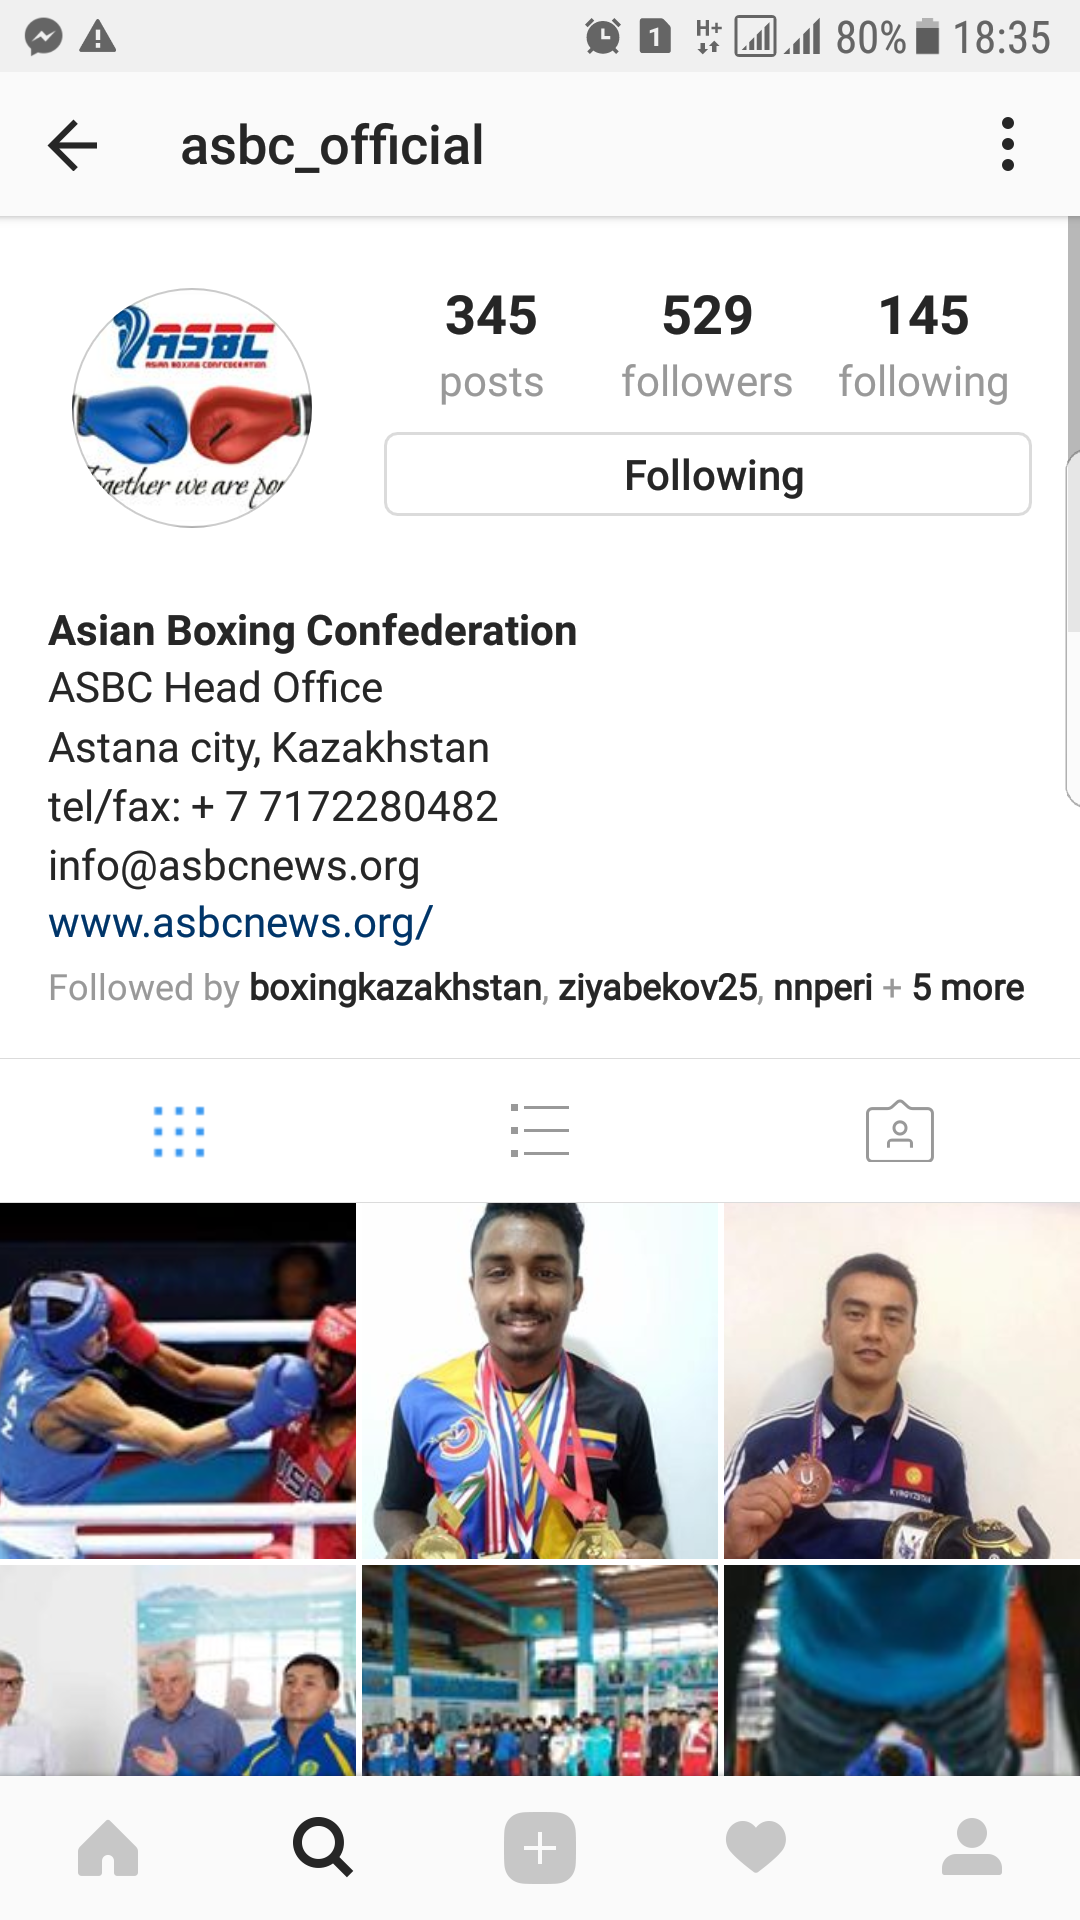 ASBC Instagram page